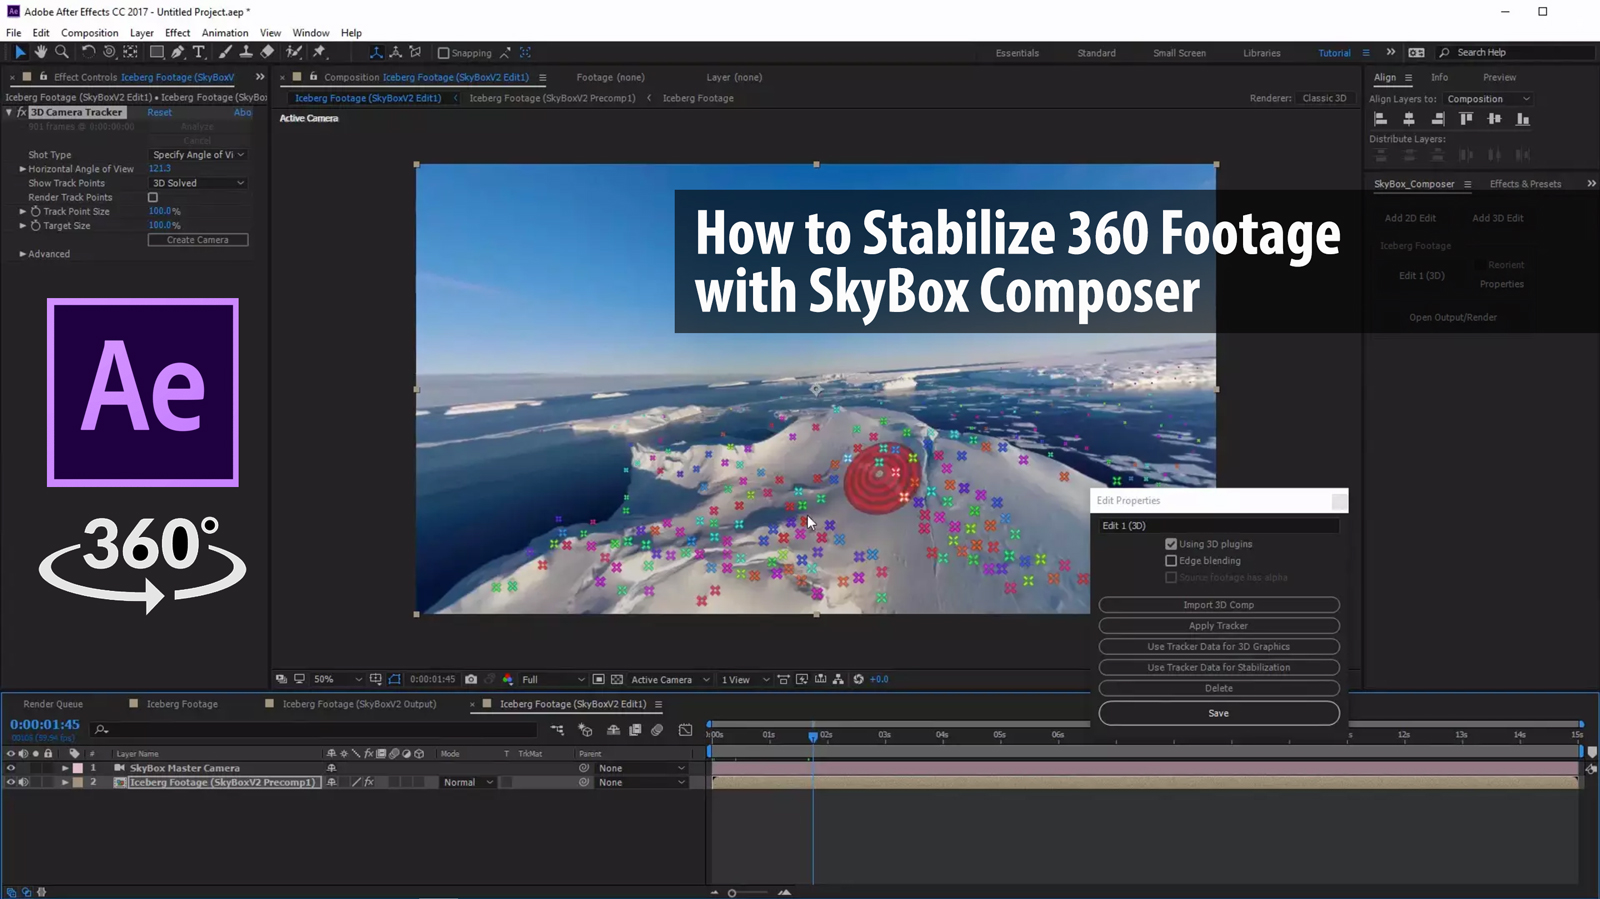 How-to-stabilize-360-footage-with-SkyBox-Composer